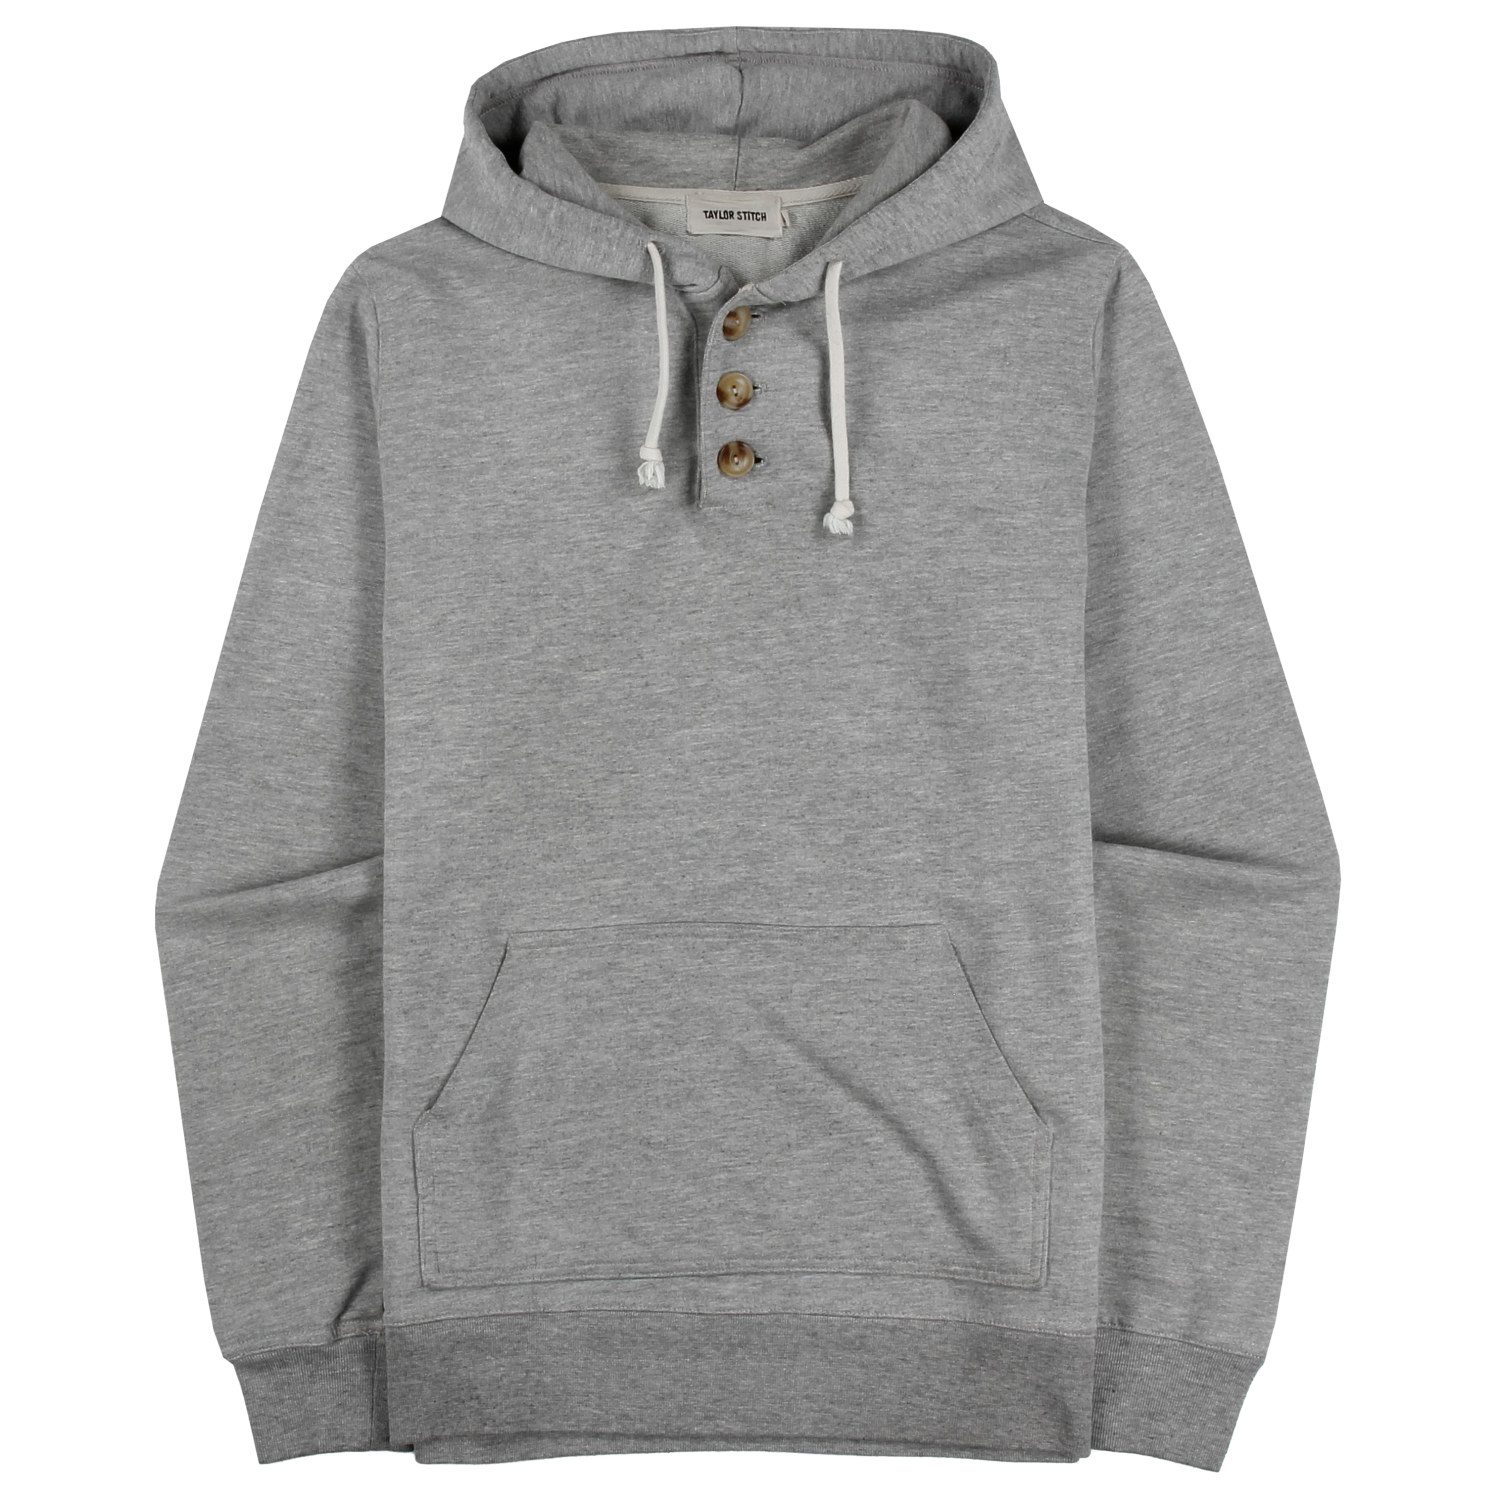 Heather Grey 3 Button Hooded Sweatshirt